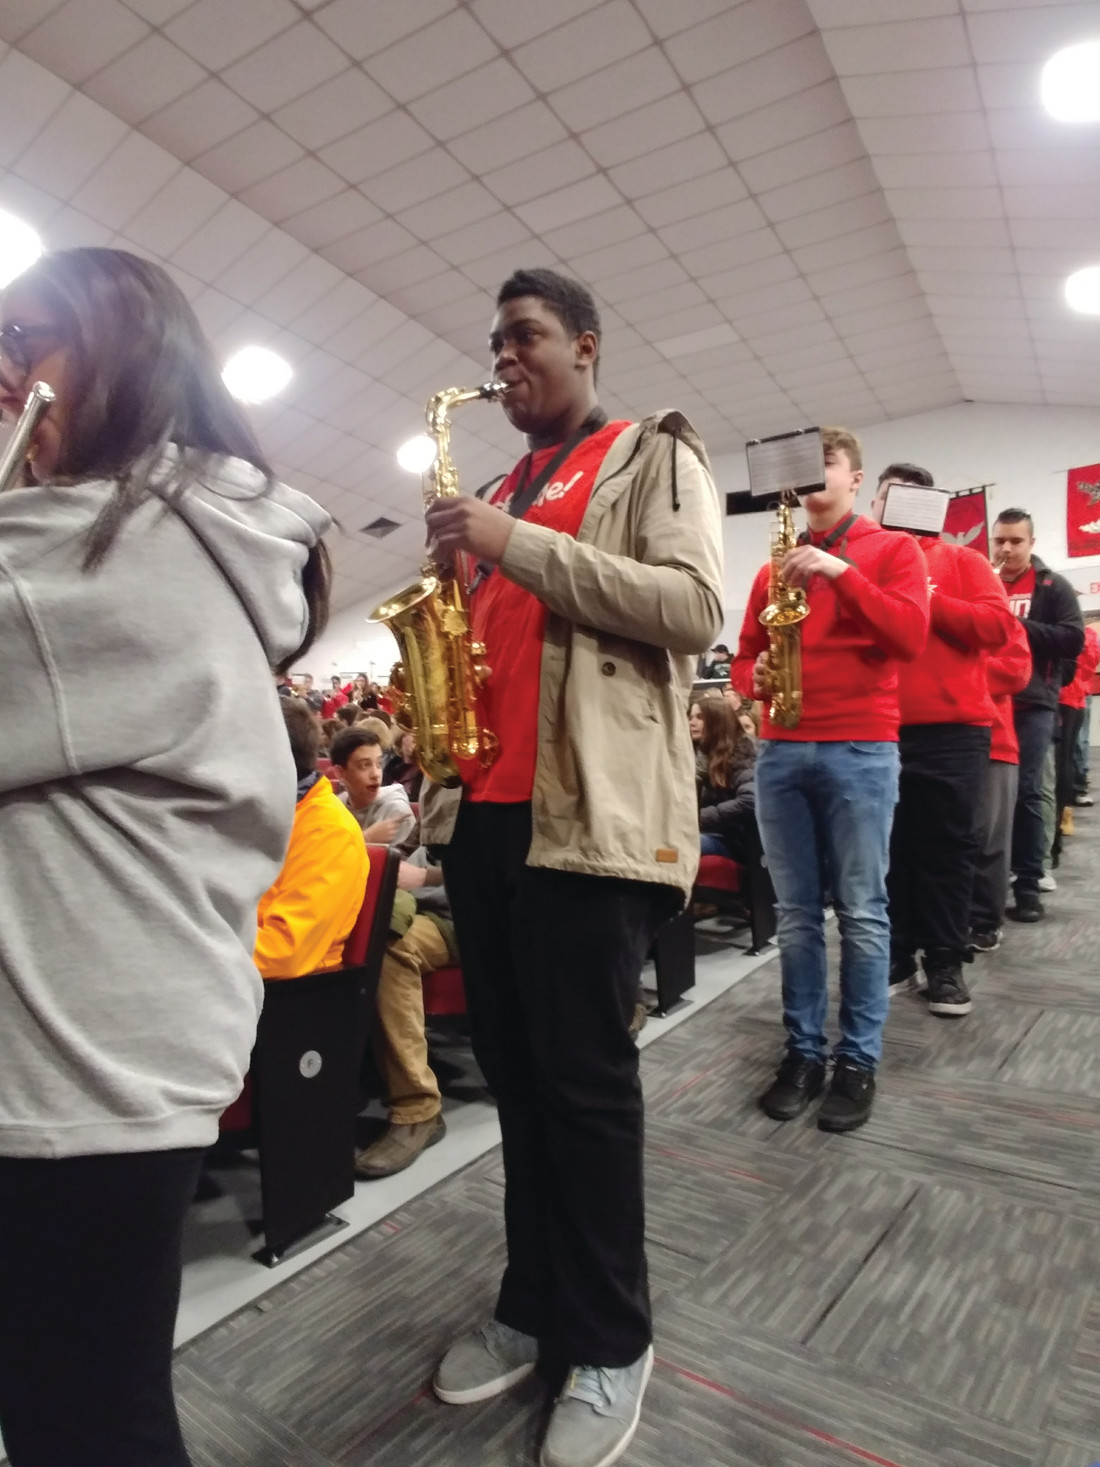 THAT FALCON BAND: Although That Falcon Band could not be on the front steps to greet guests as they often due, they put on a show of pep rally quality for those who gathered in the auditorium for Sunday afternoon's Future Falcon Open House.